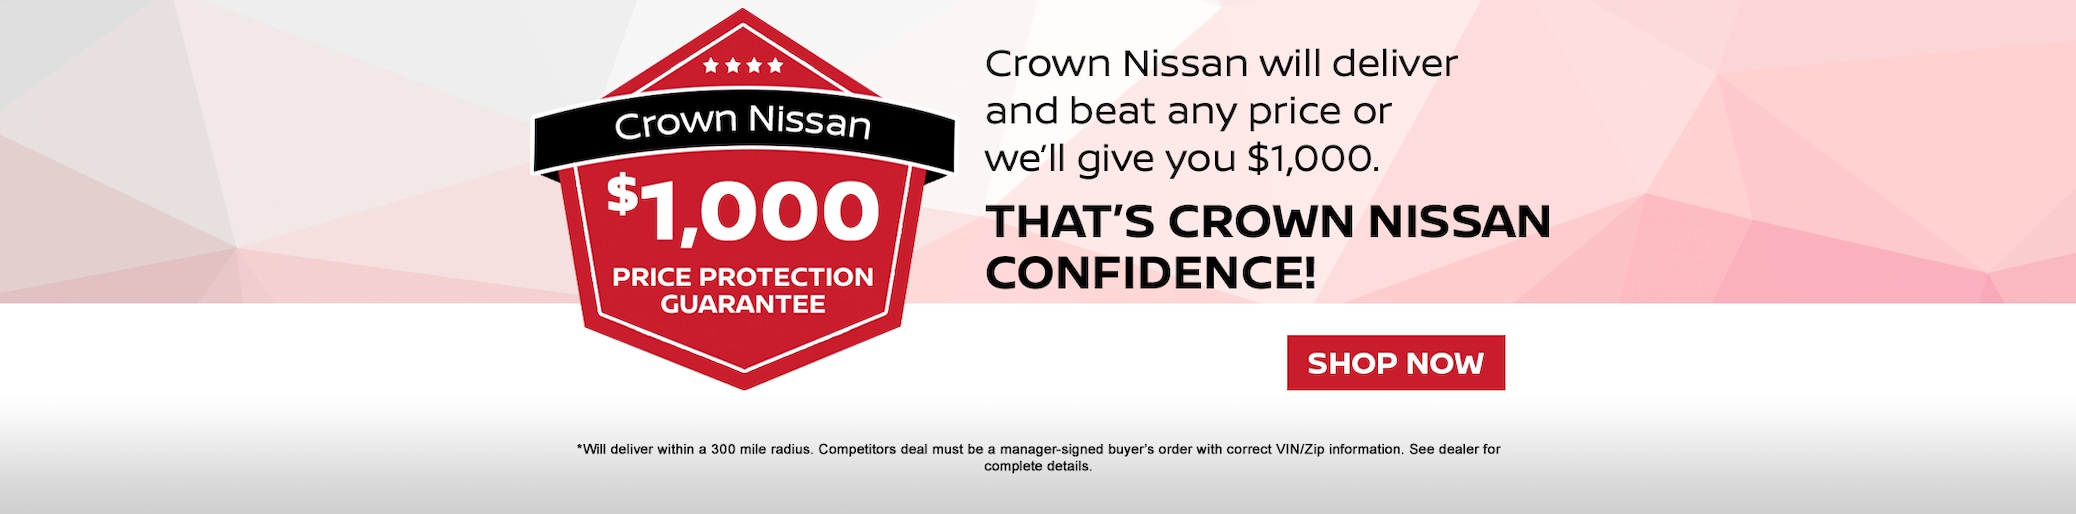 Crown Nissan | New Nissan Dealership Serving Greensboro, High Point ...